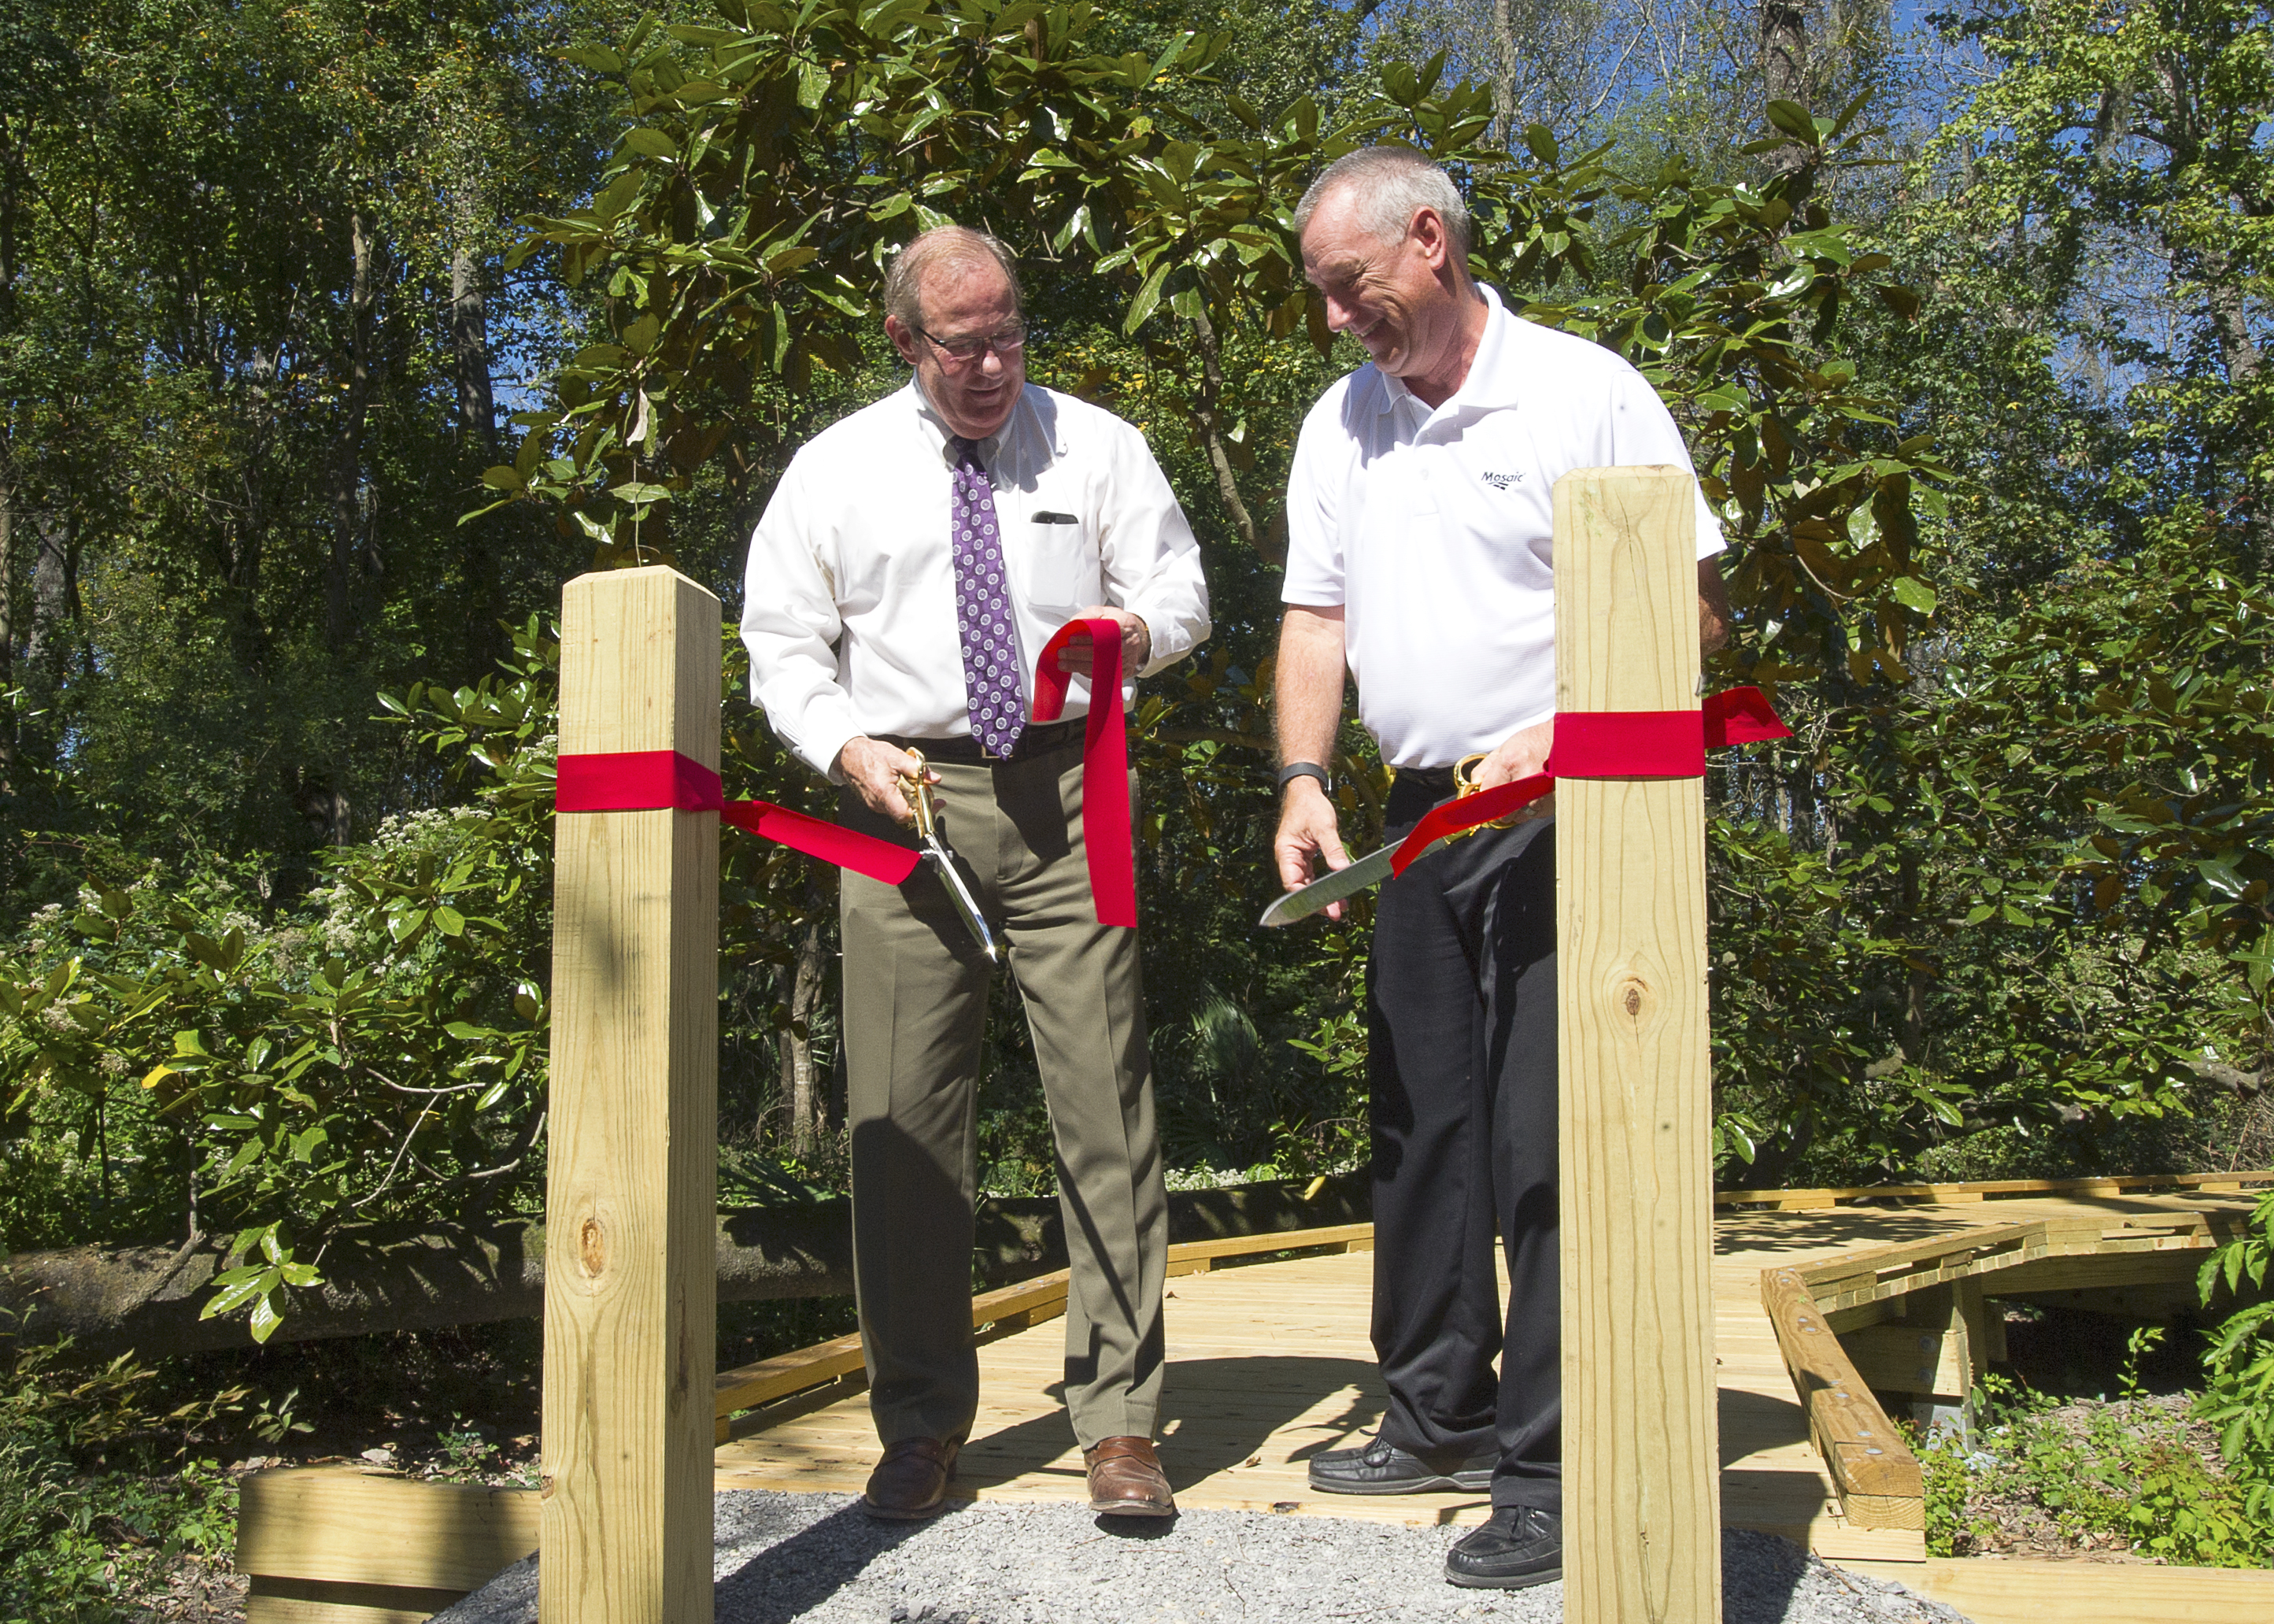 New LSU AgCenter wetlands program kicks off with boardwalk ribbon cutting